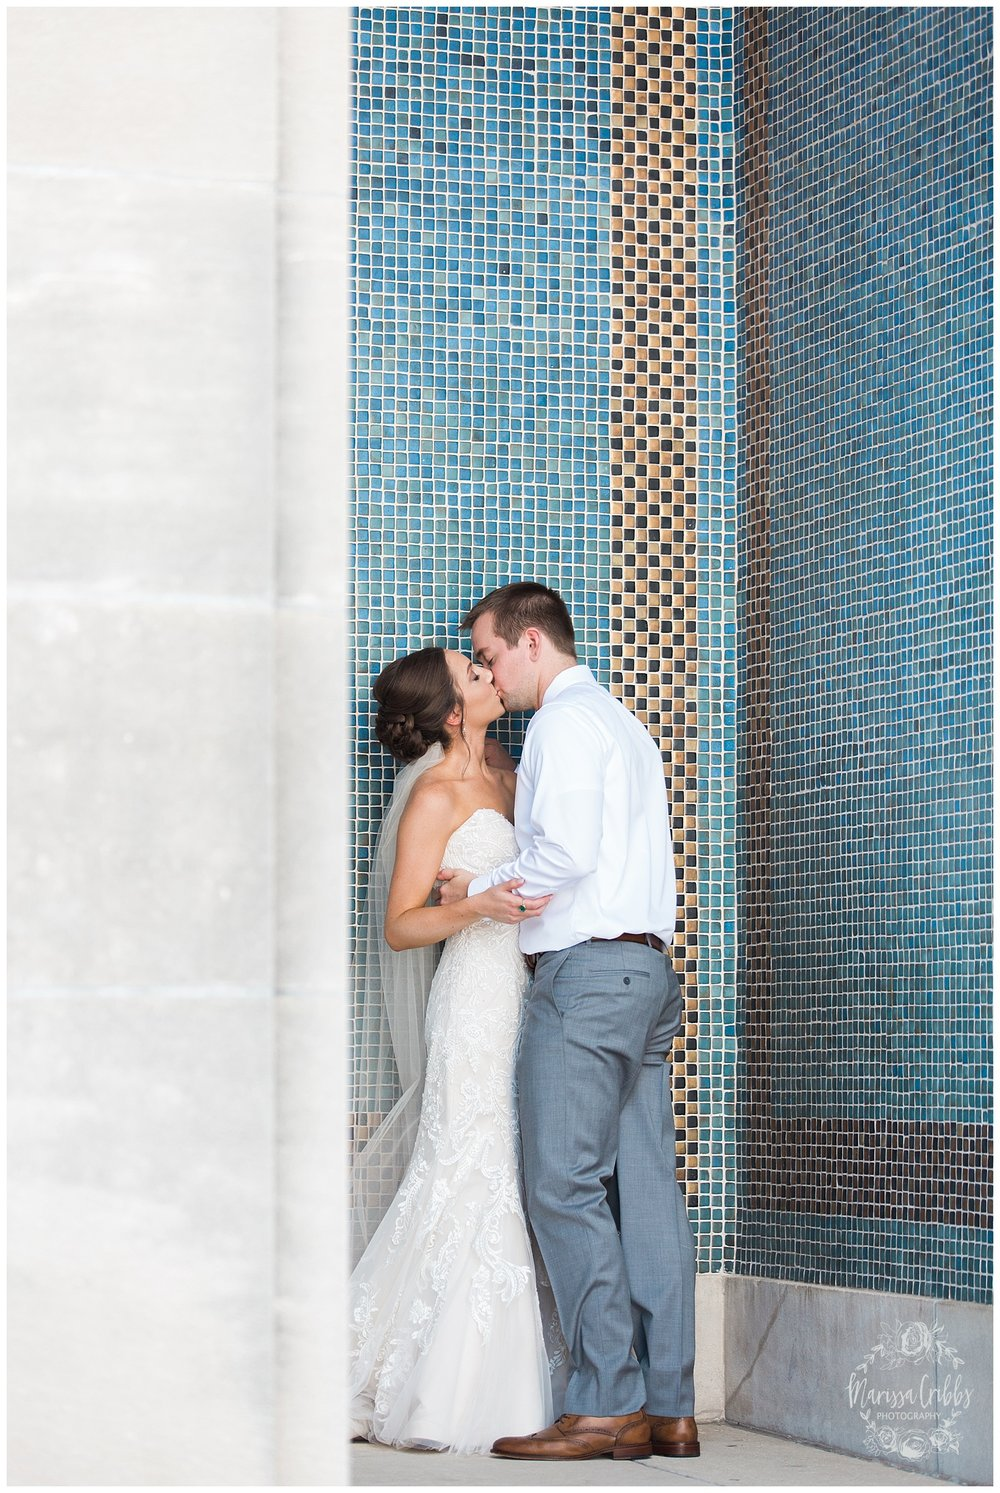 FEASTS OF FANCY KC WEDDING | THE HOBBS WEDDING KANSAS CITY | MARISSA CRIBBS PHOTOGRAPHY_2215.jpg